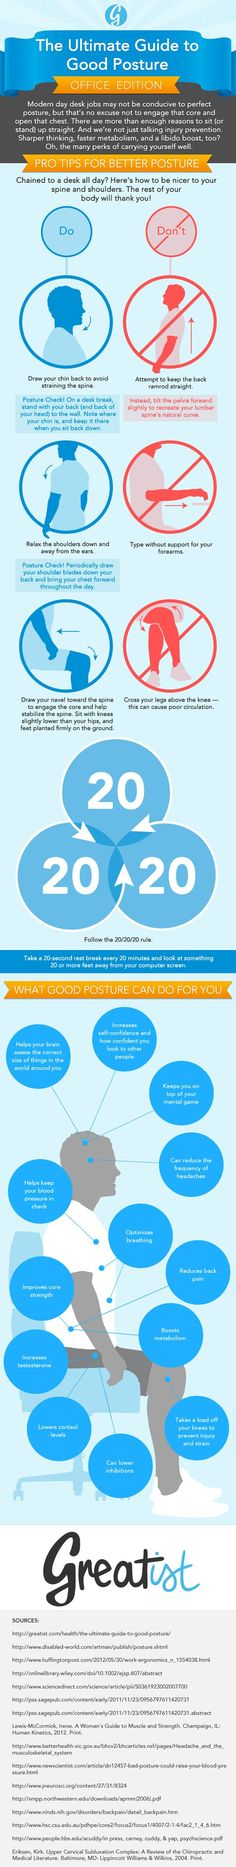 <p>Hour after hour, it's hard to maintain good posture on the job. But sitting tall can mean a healthy boost from head to toe. Get to know the benefits of good posture on the job — in infographic form. </p> https://greatist.com/health/ultimate-guide-good-posture-work-infographic